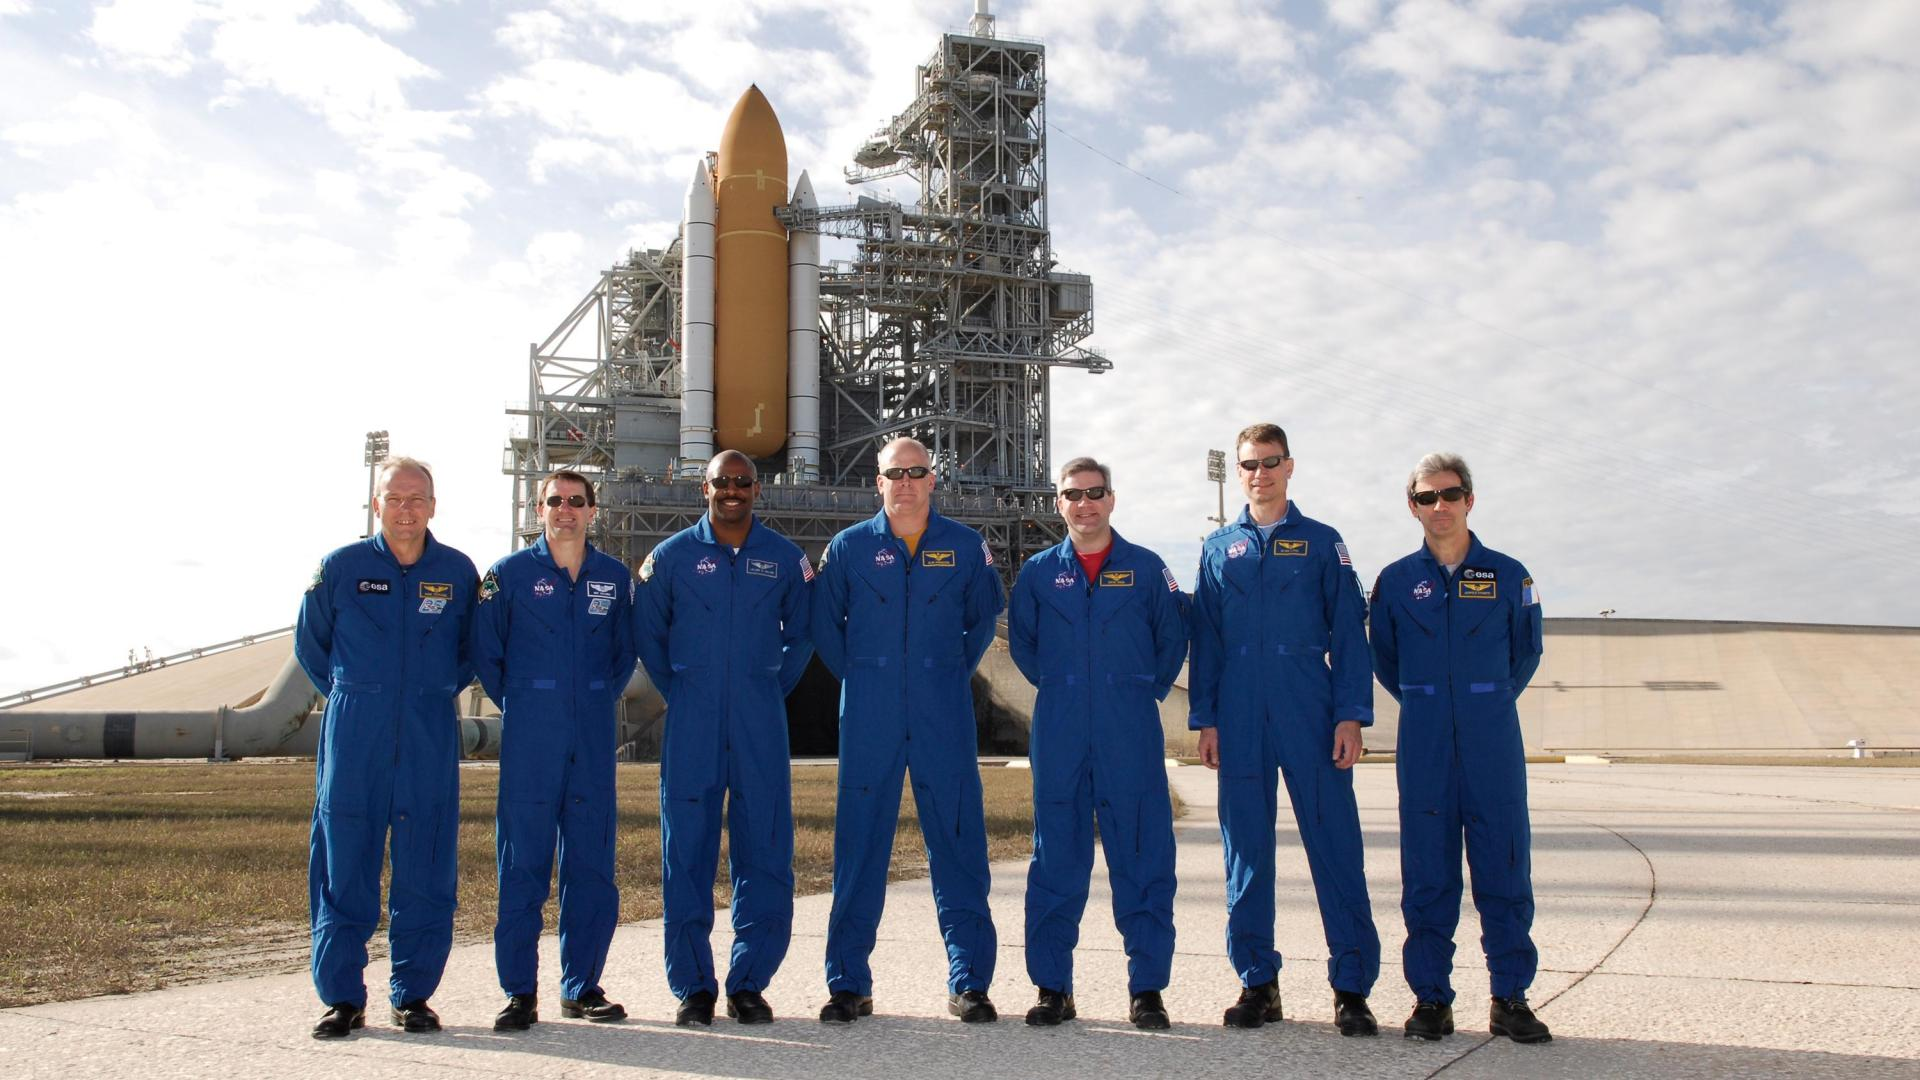 The STS-122 Crew at Launch Pad 39A at Kennedy Space Center